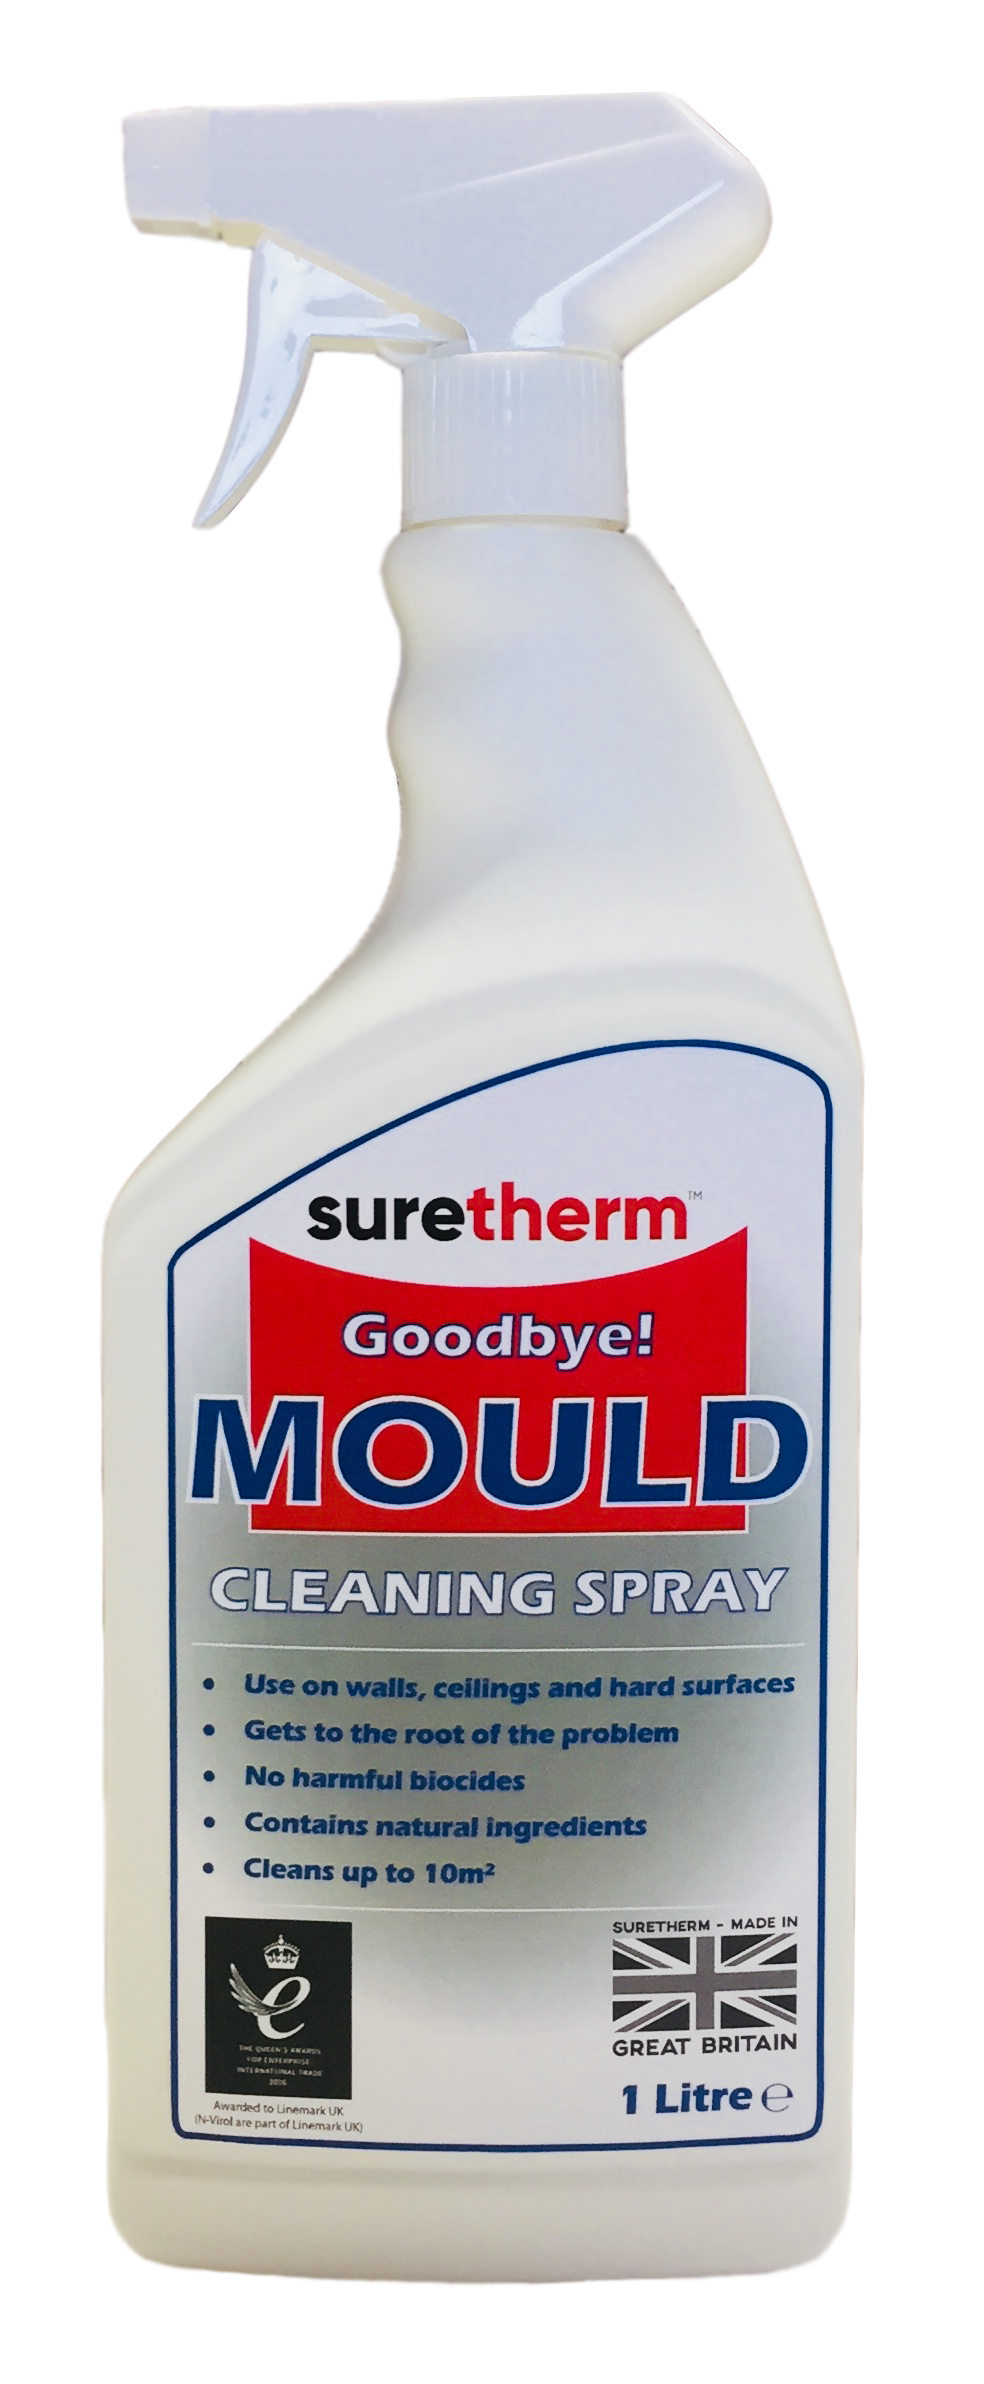 Suretherm Cleaning Spray 1 Litre